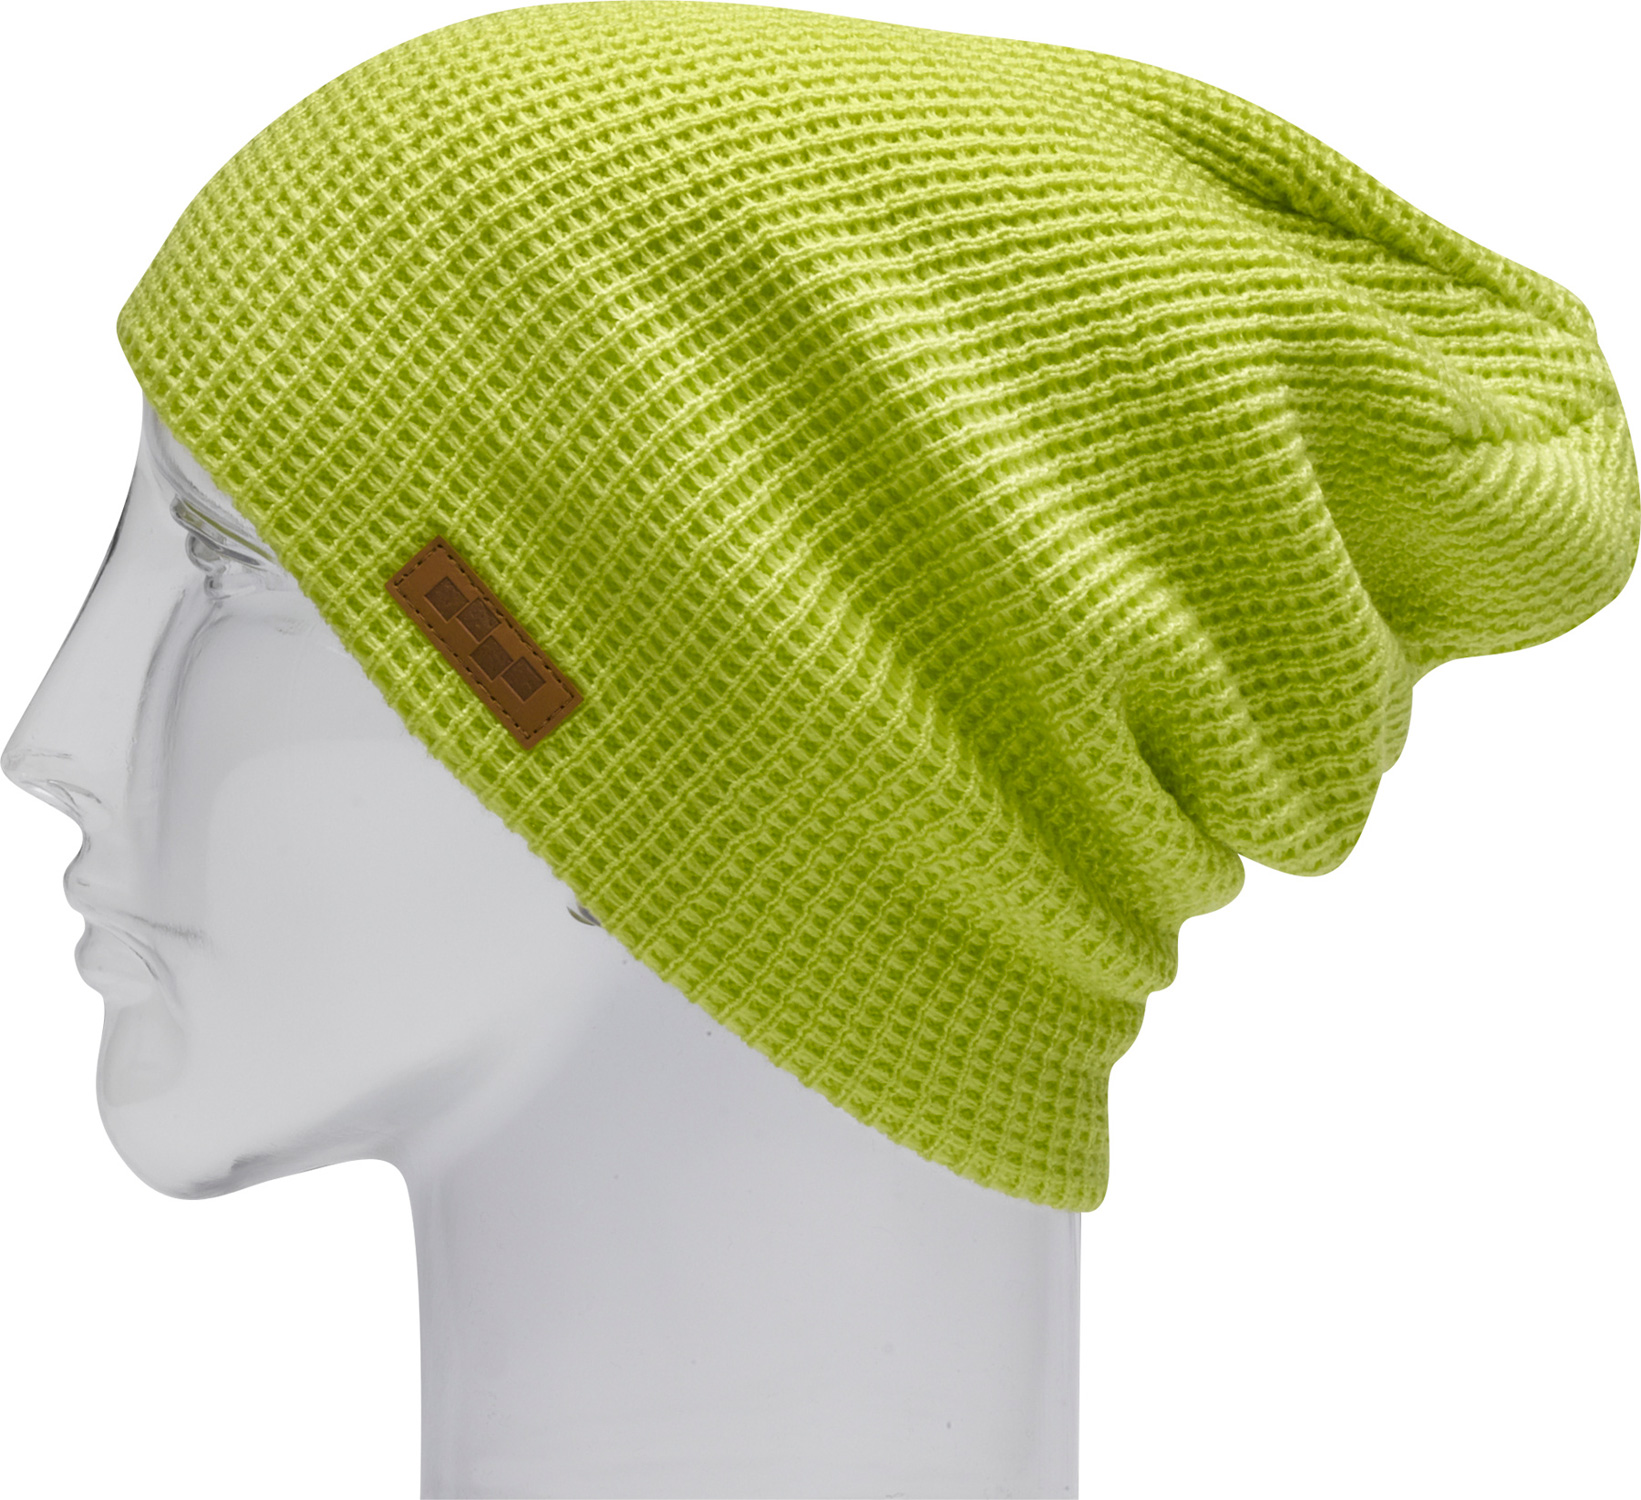 "Snowboard Key Features of the Foursquare Crane Beanie: 7 Gauge Cable Knit 13"" Tall Machine Knit Waffle Knit - $23.95"